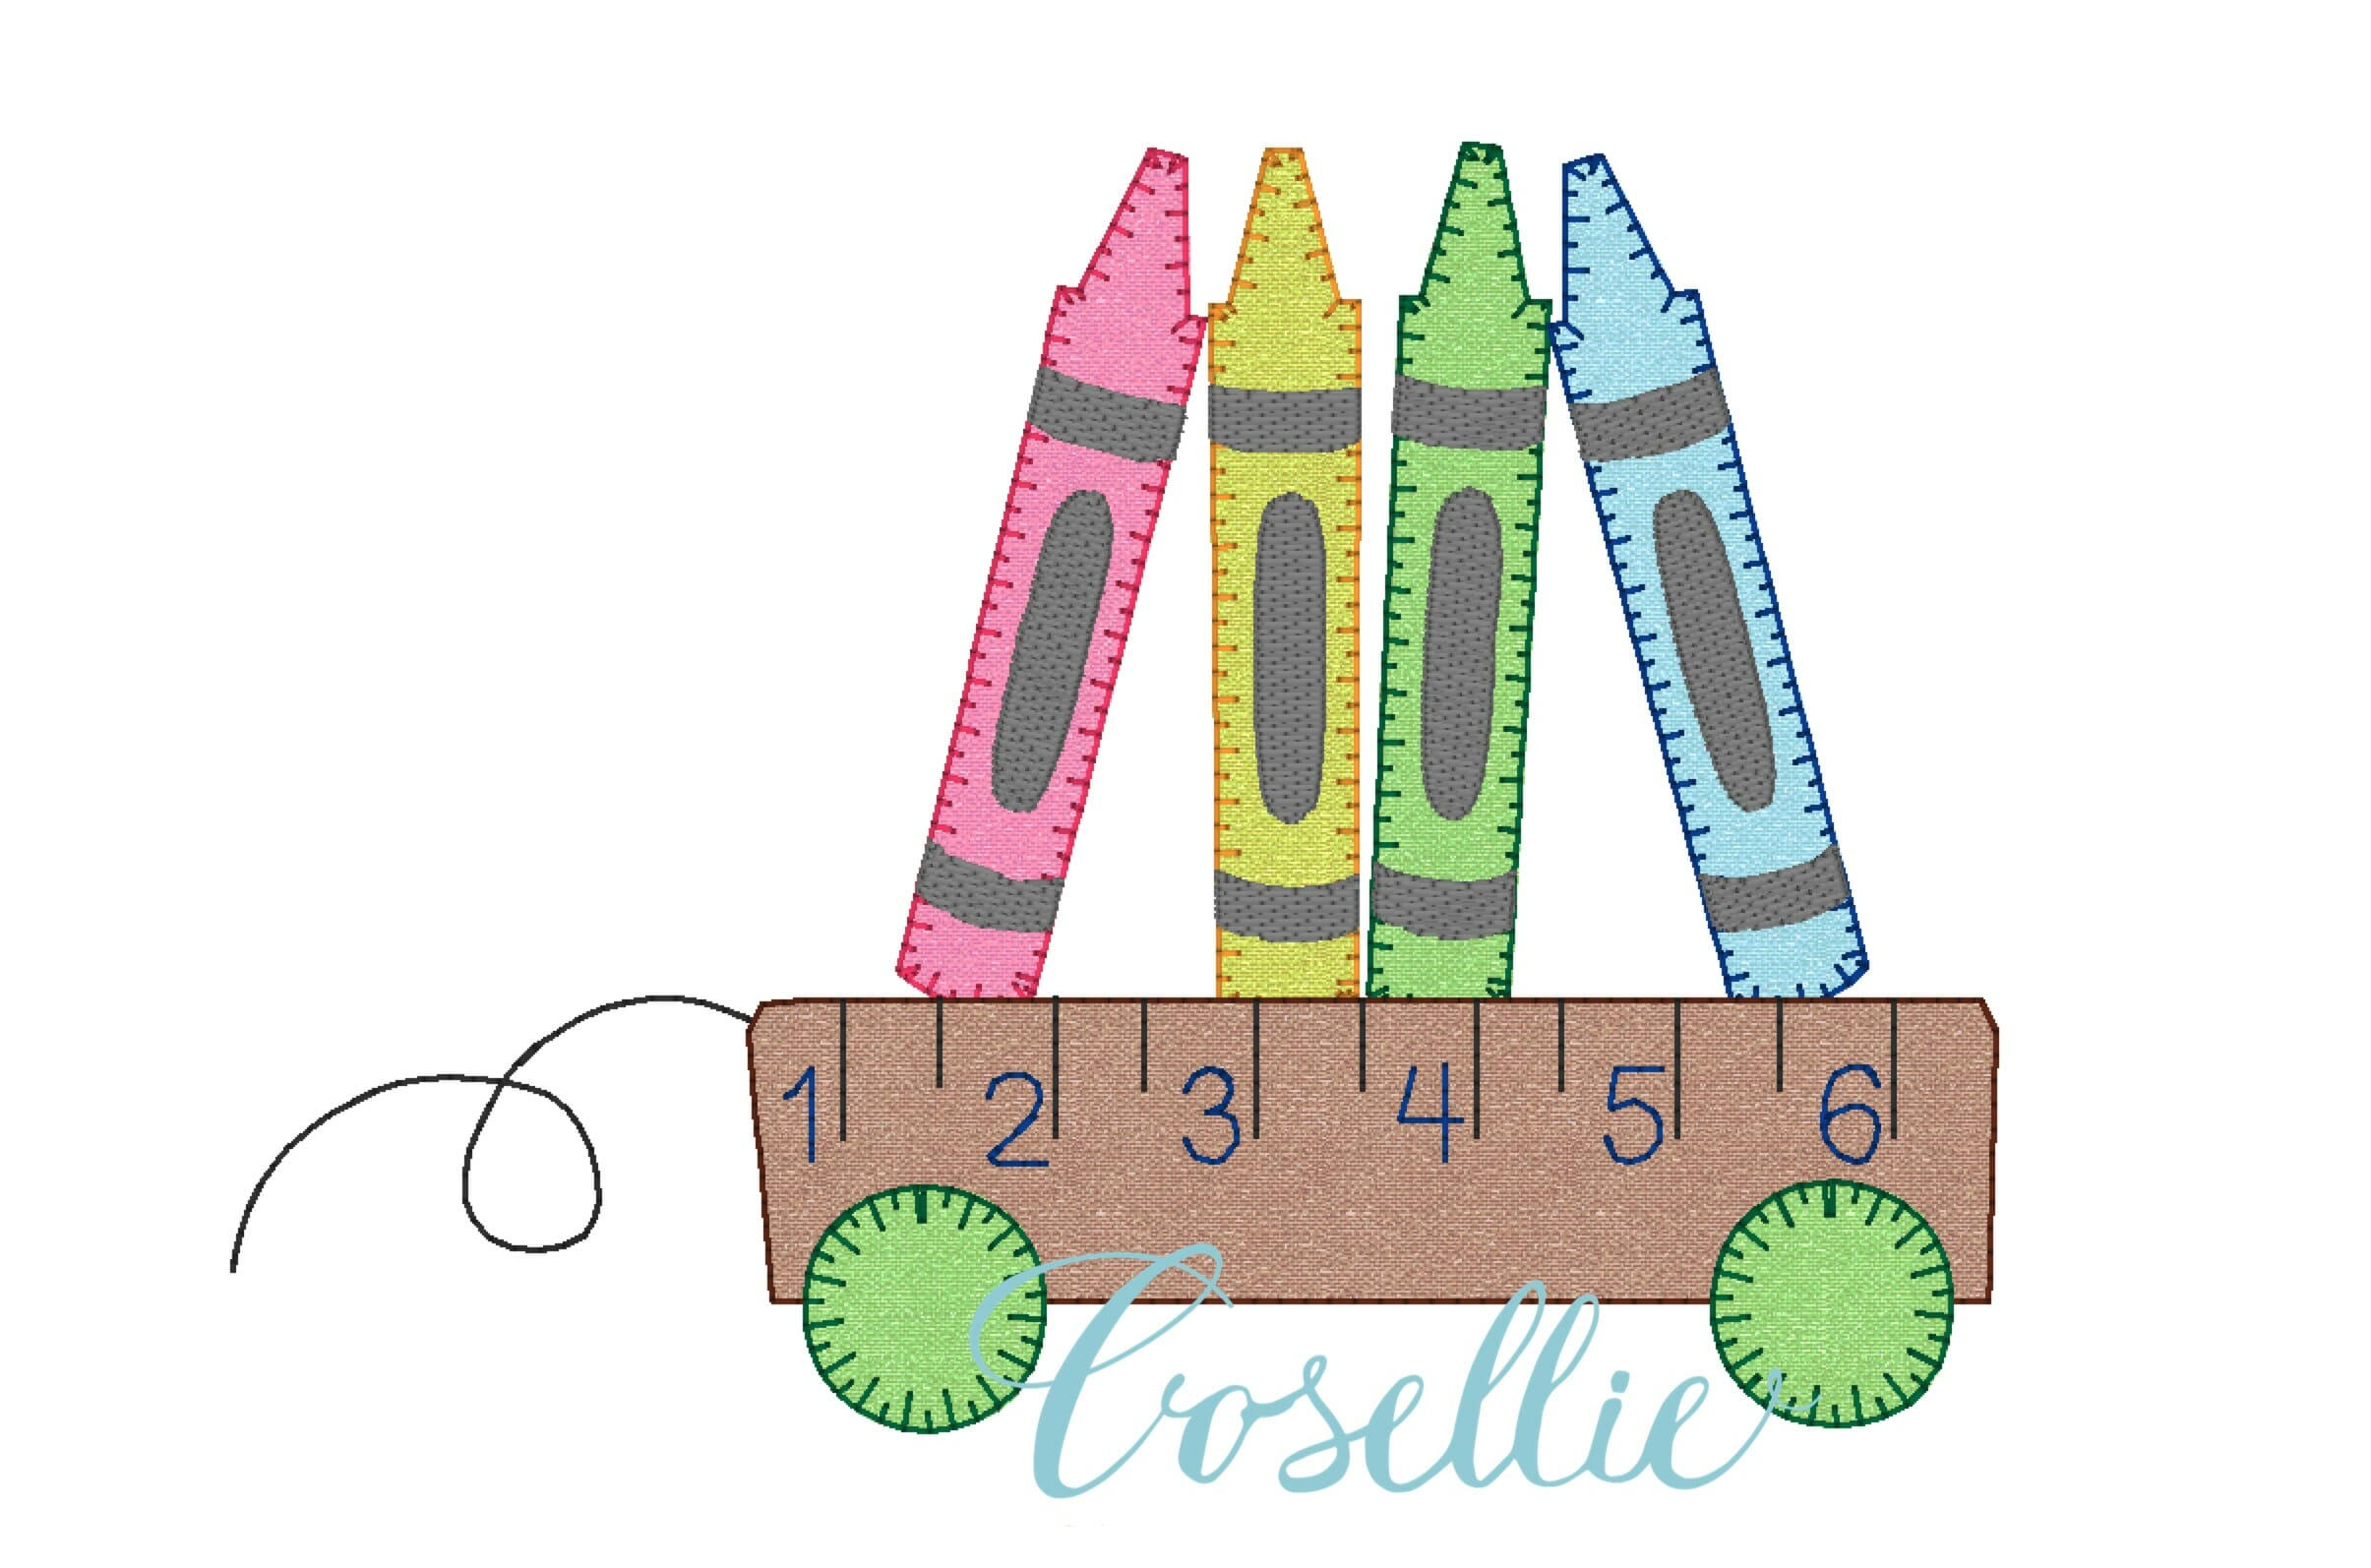 Crayons wagon embroidery design school embroidery design cosellie